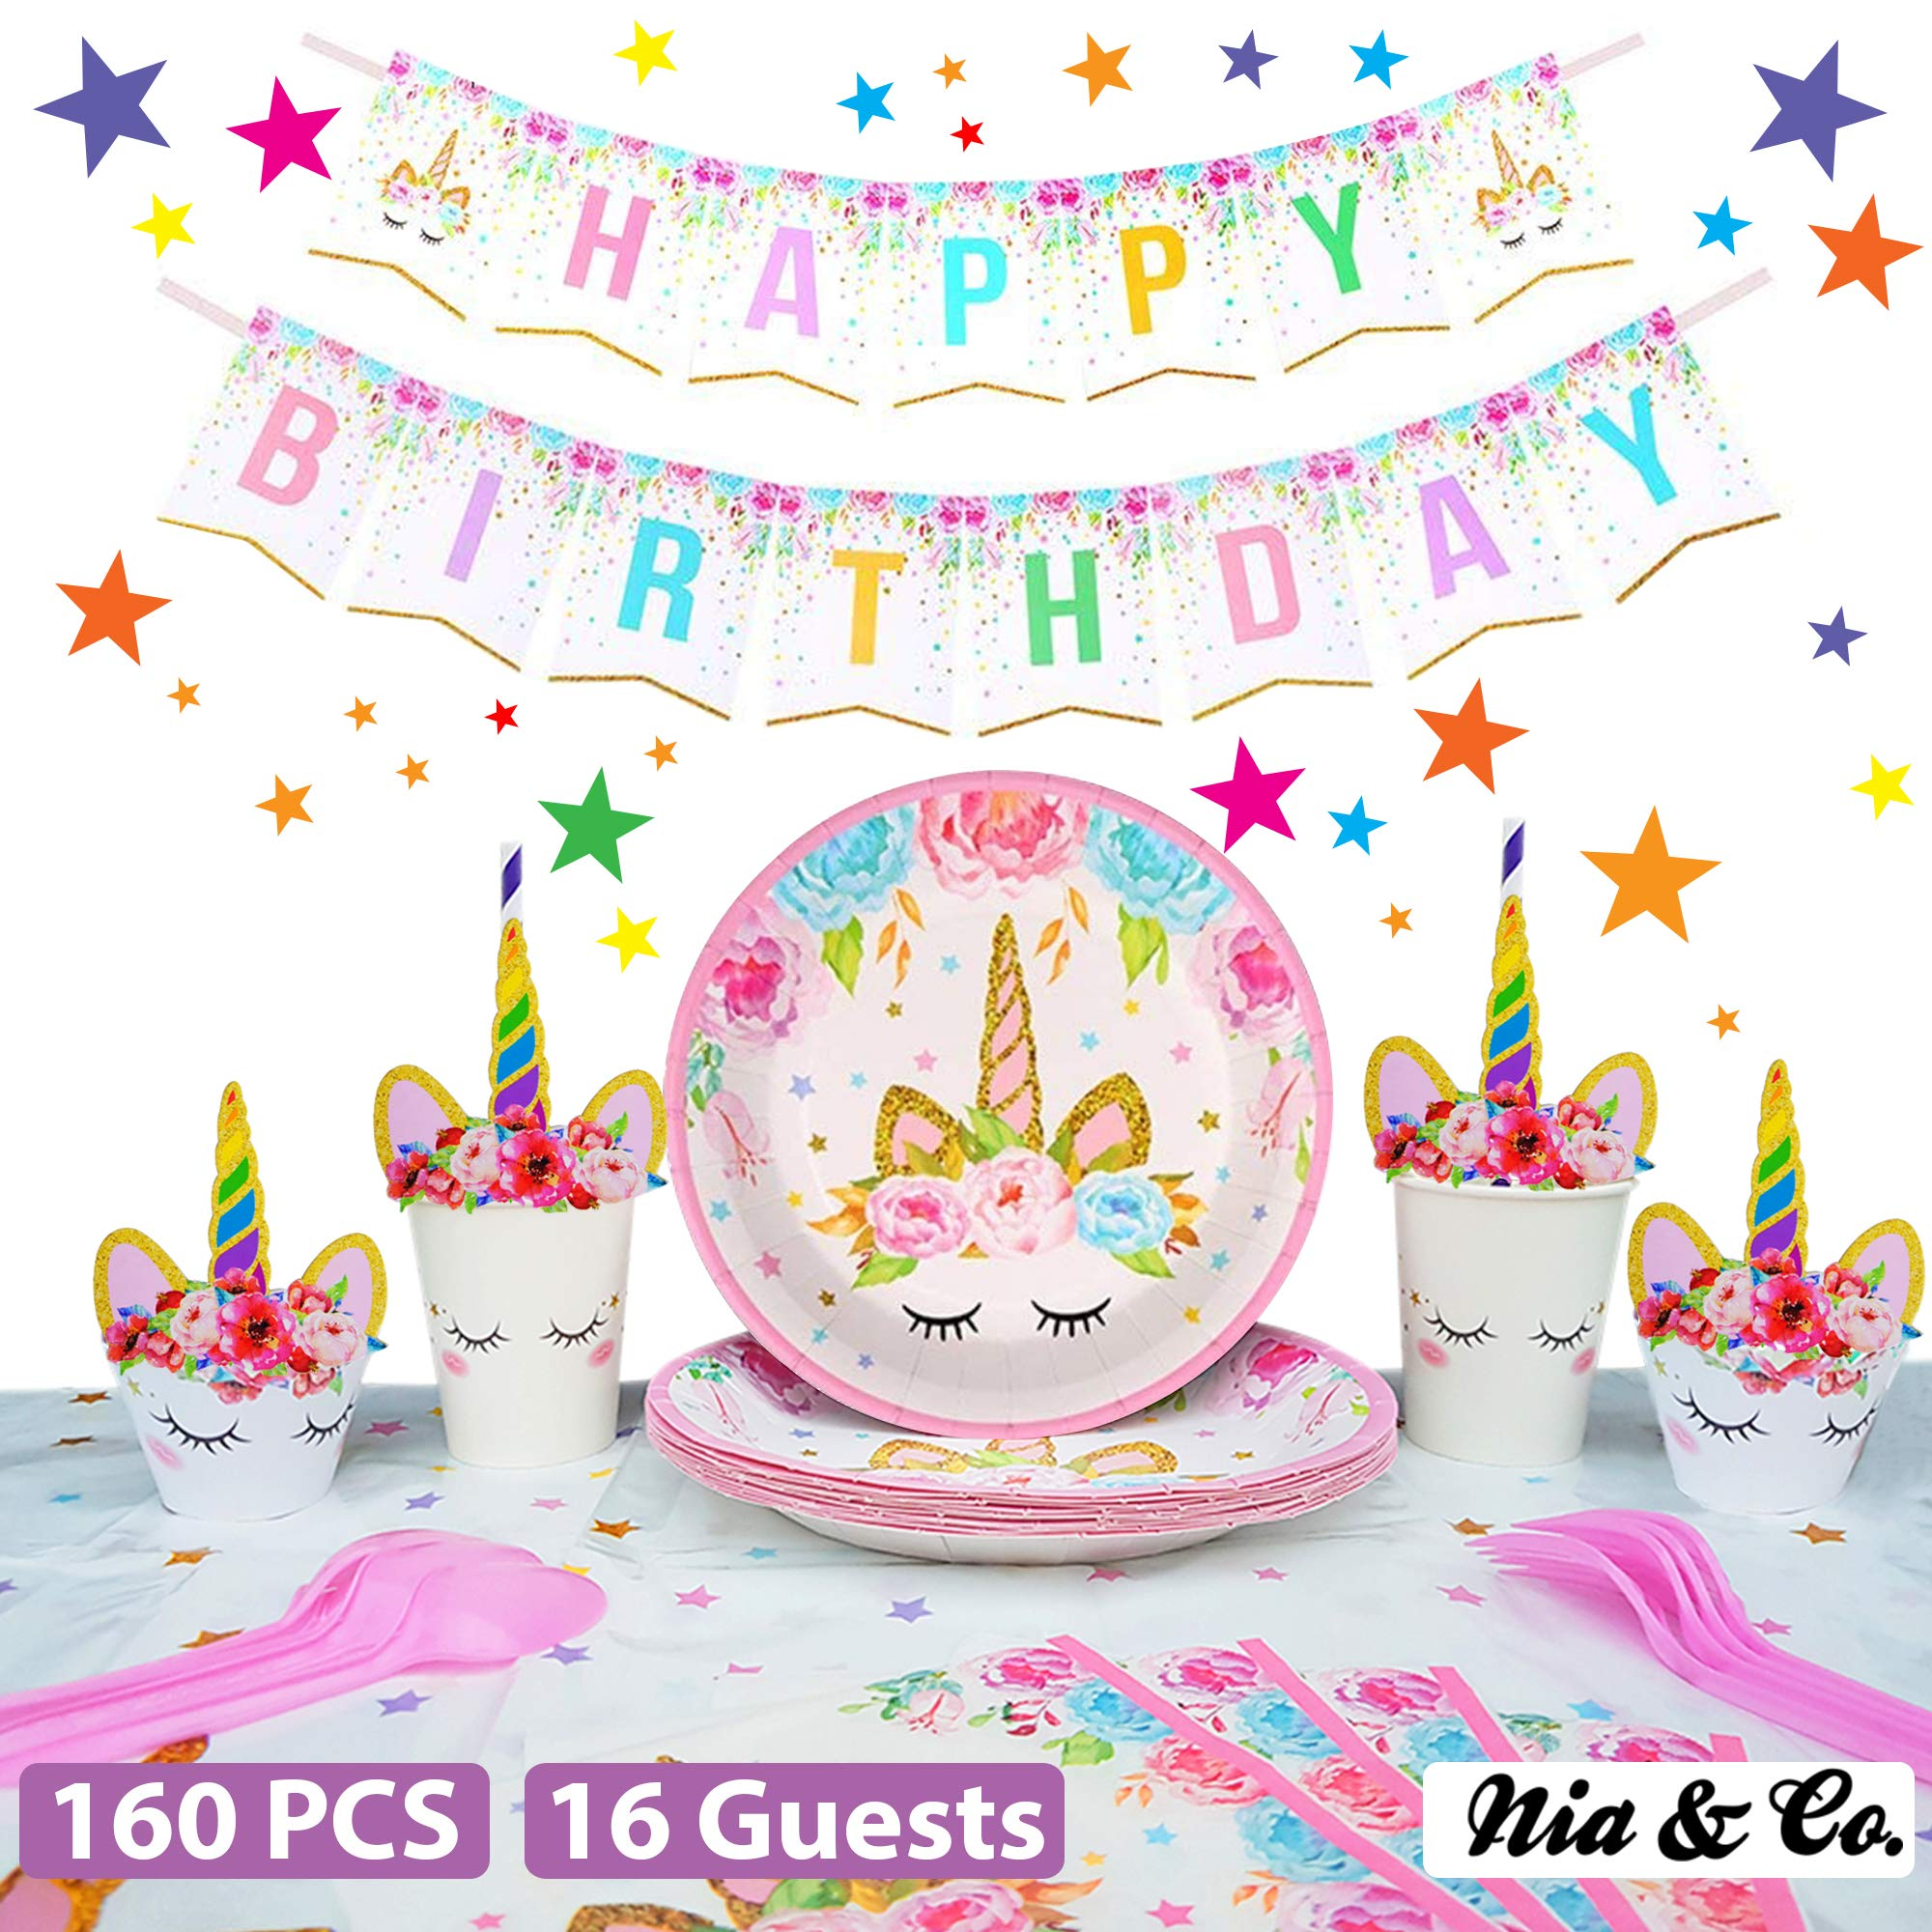 Unicorn Party Supplies Set - Birthday Decorations for Girls - Serves 16 - Magical Plates, Rainbow Straws, Cups, Banner, Cupcake Topper, Wrappers & Tableware kit - Pink items for Kids 1st Party Favors